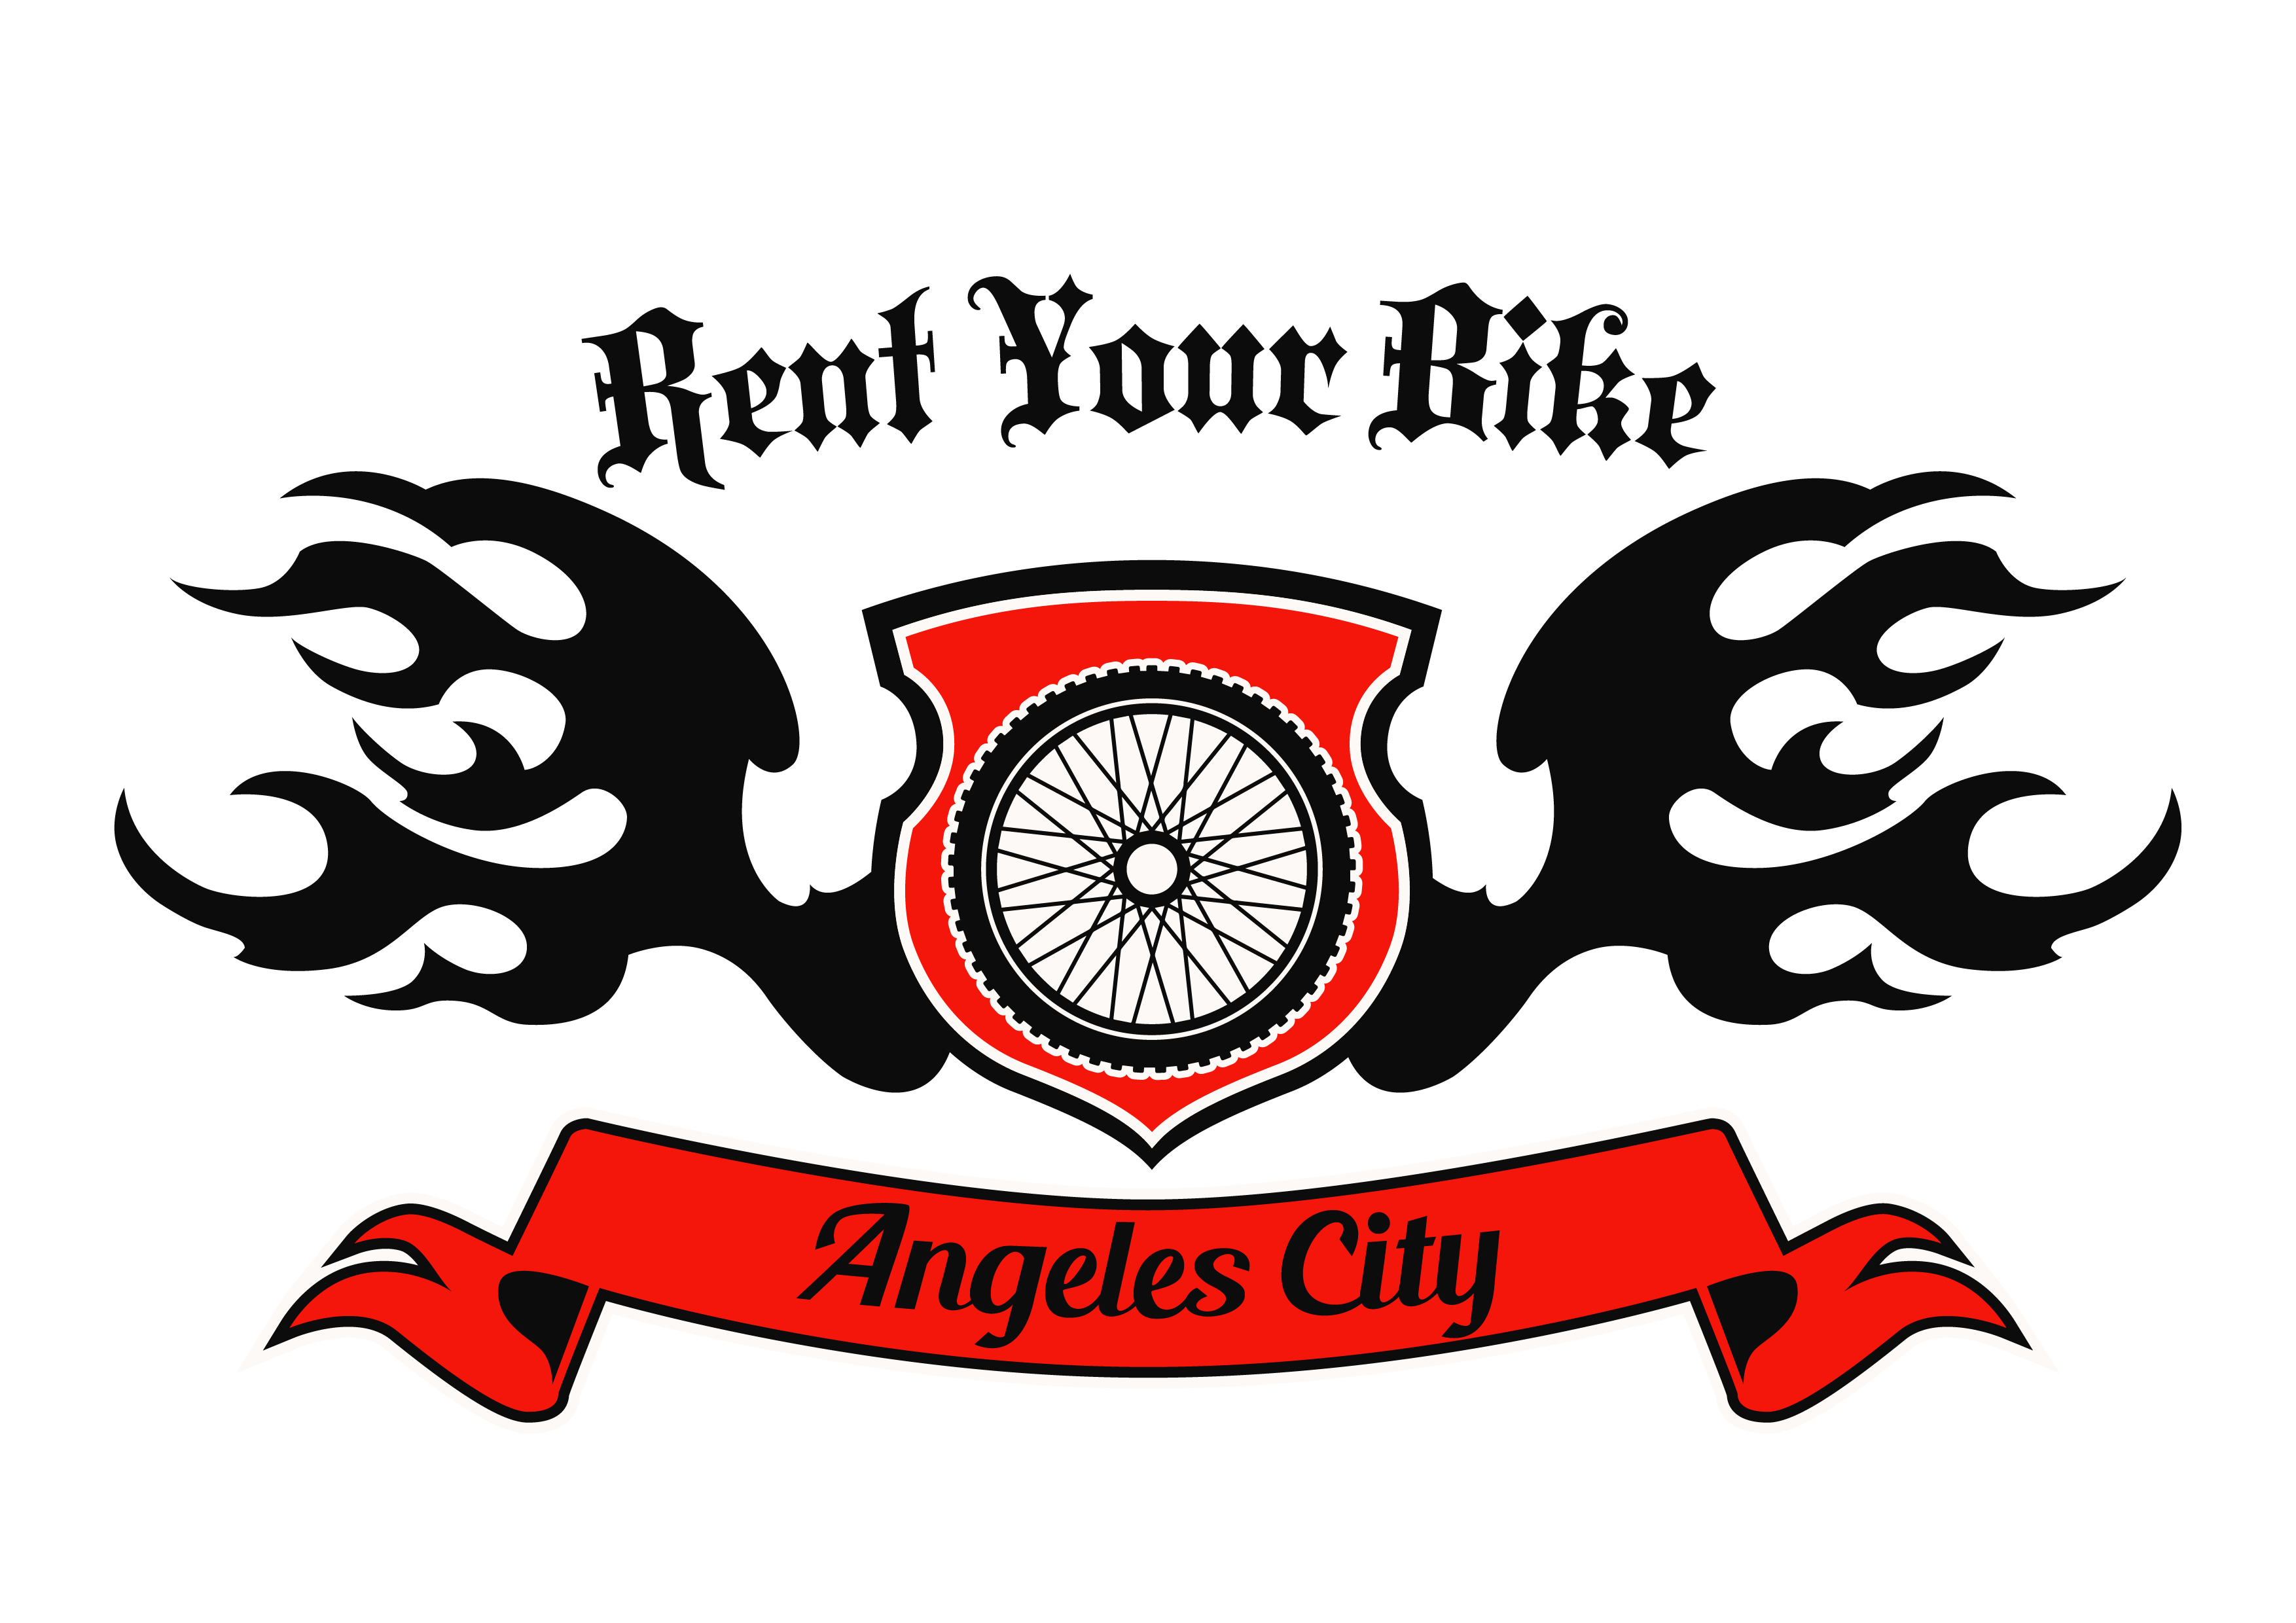 Rent Your Bike Angeles